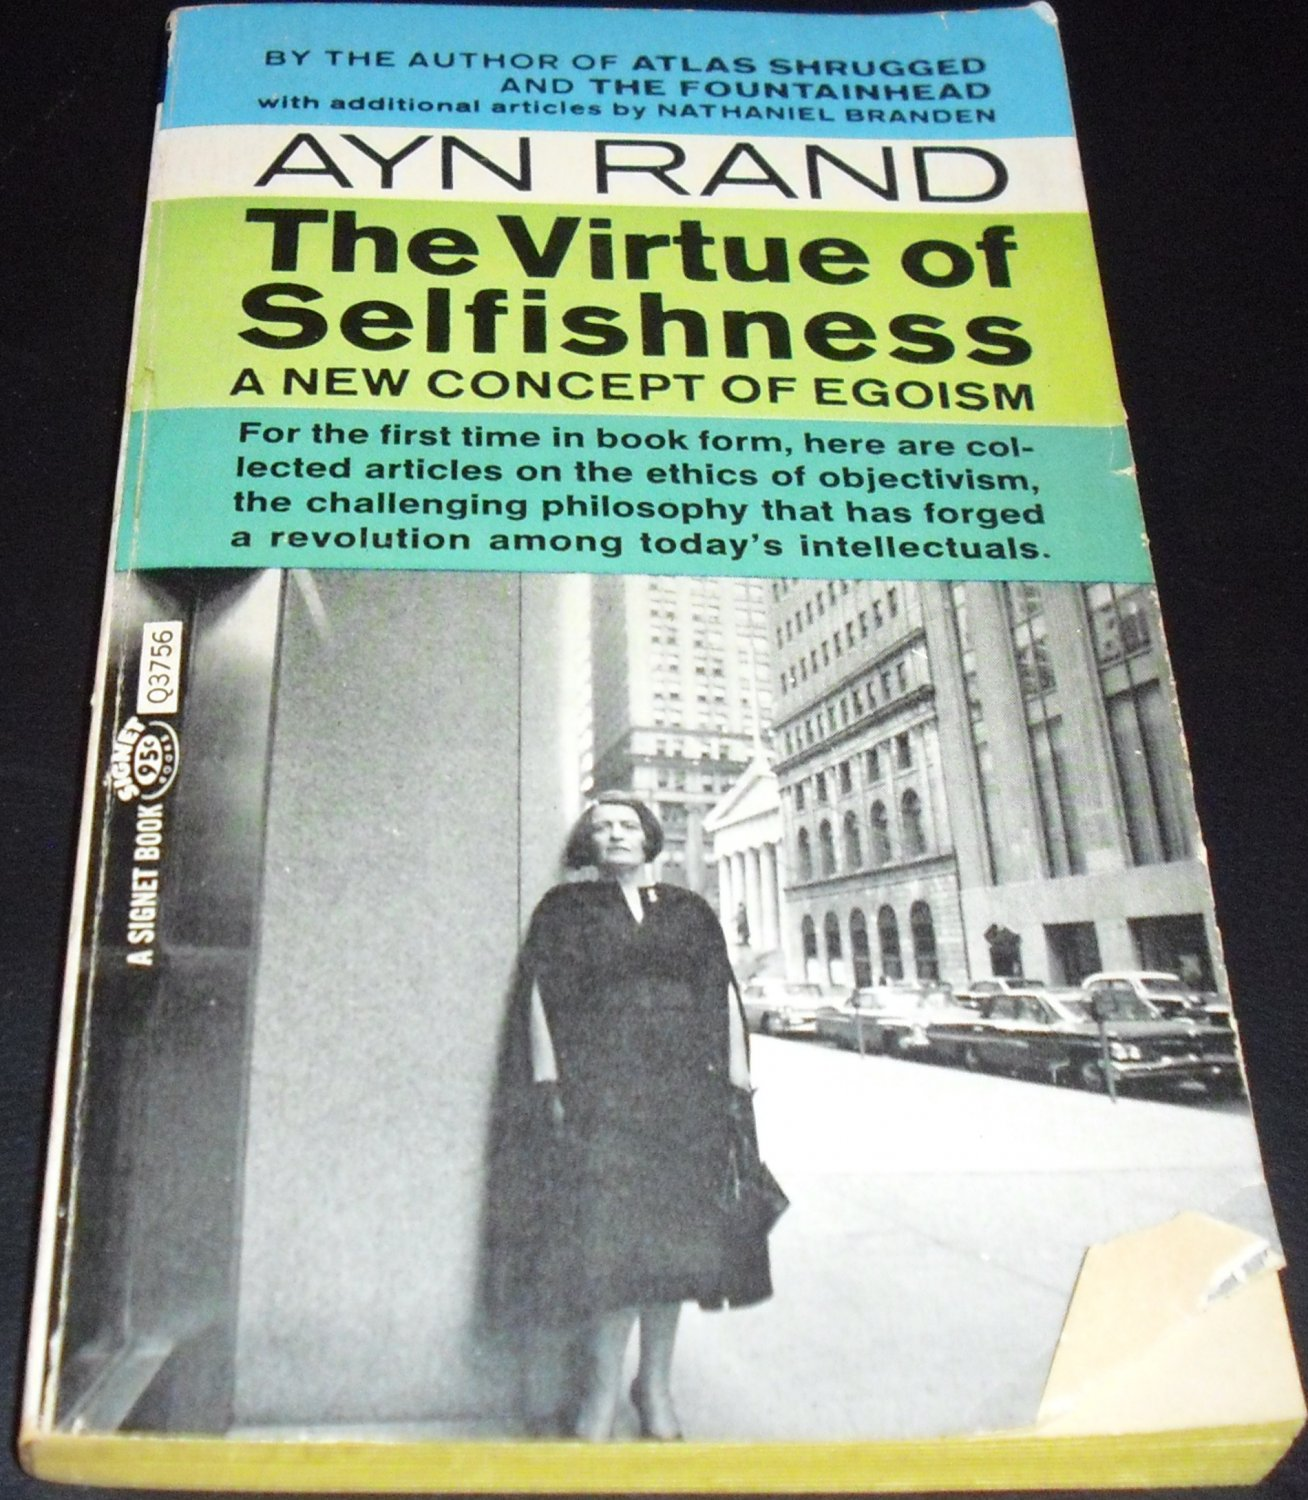 objectivism and the fountainhead essay Took a course related to ayn rand or objectivism how likely would you be to participate in a video contest on the fountainhead compared to writing an essay.